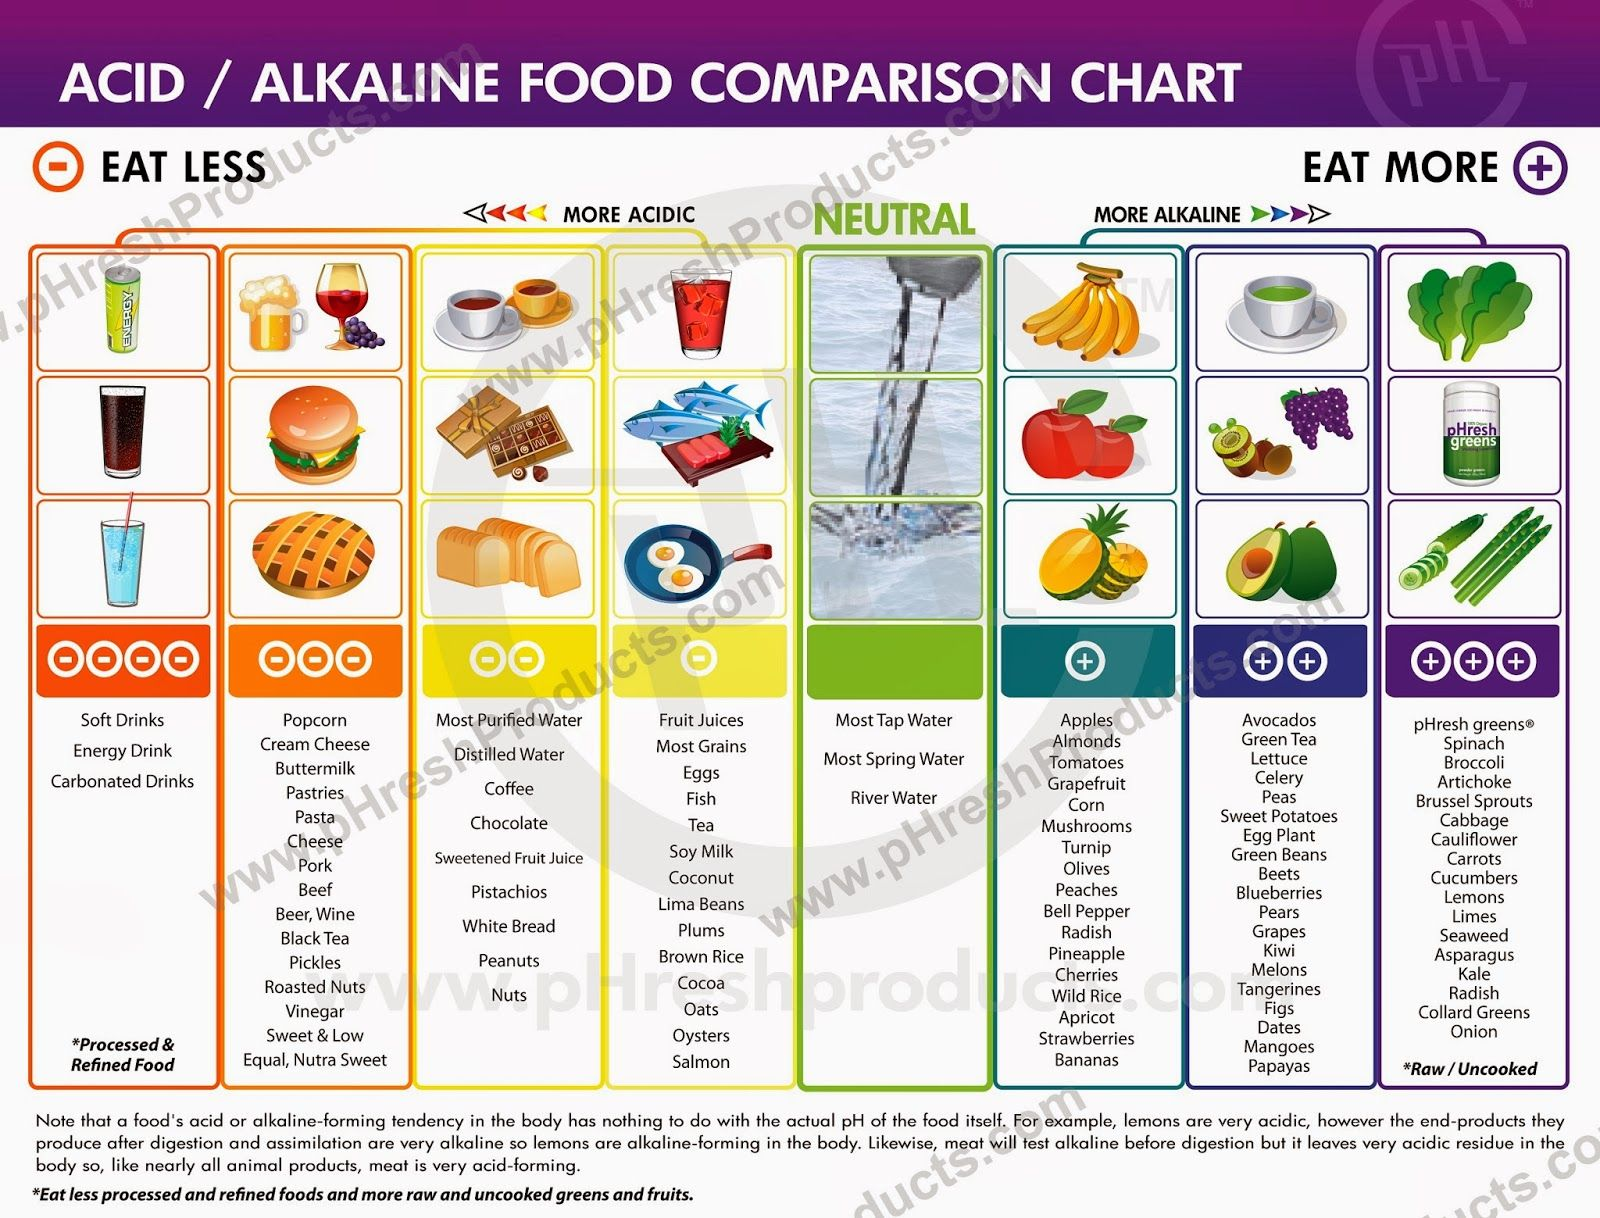 My Health Care Acid Alkaline Food Comparison Chart